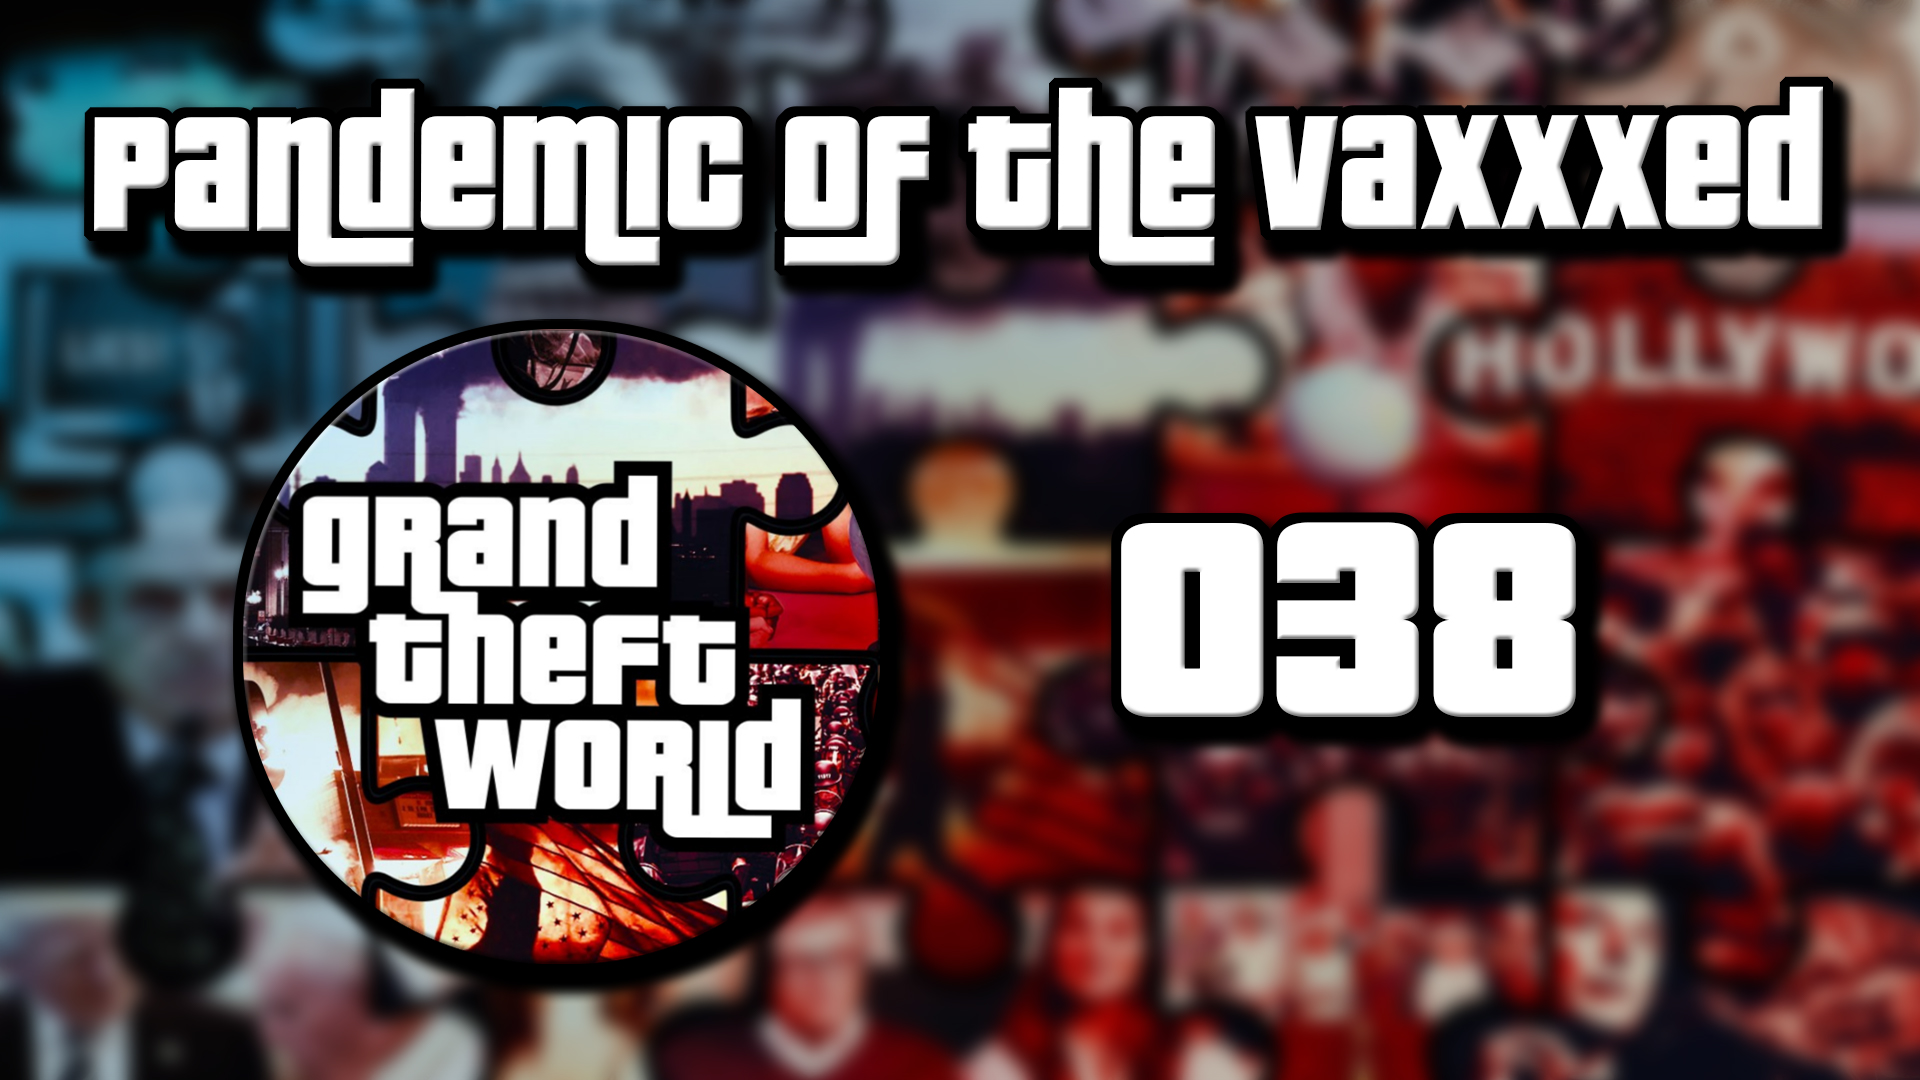 Grand Theft World Podcast 038 Pandemic of The Vaxxxed